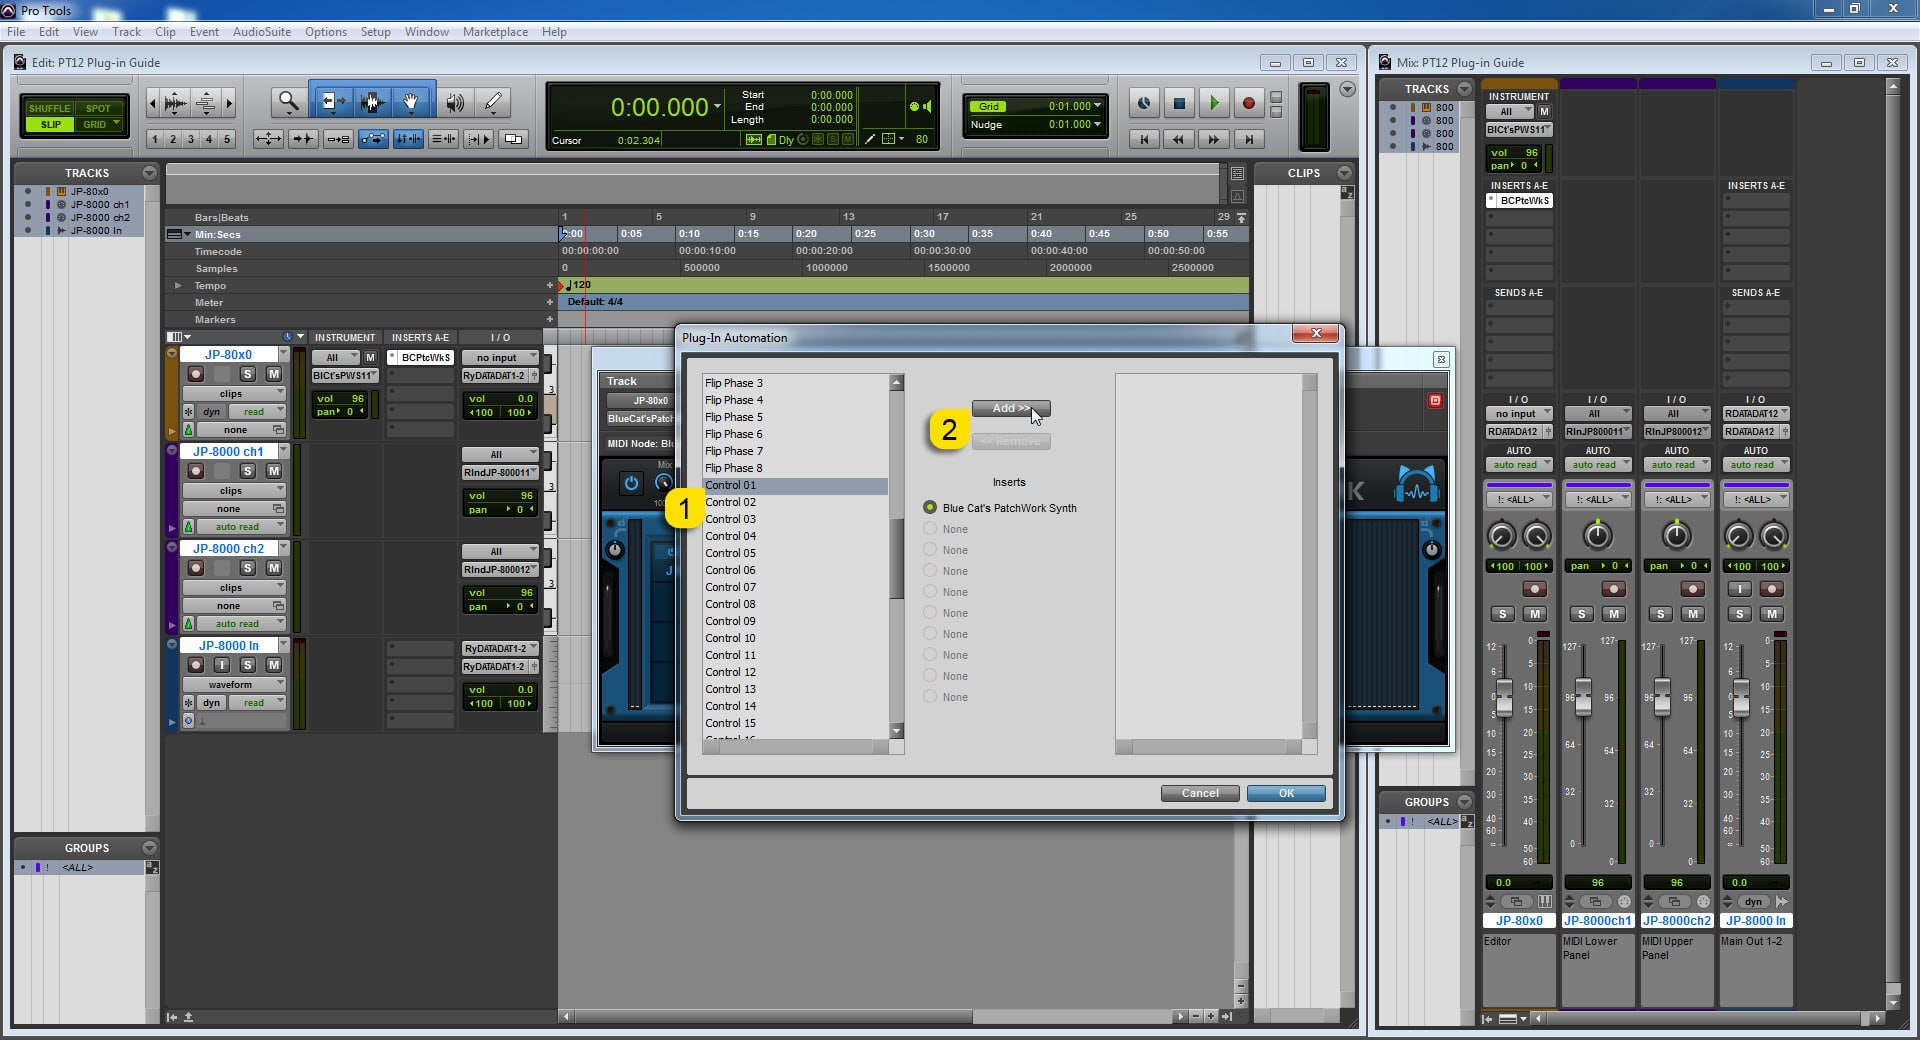 AVID Pro Tools Config - Assign PatchWork Parameters to DAW map